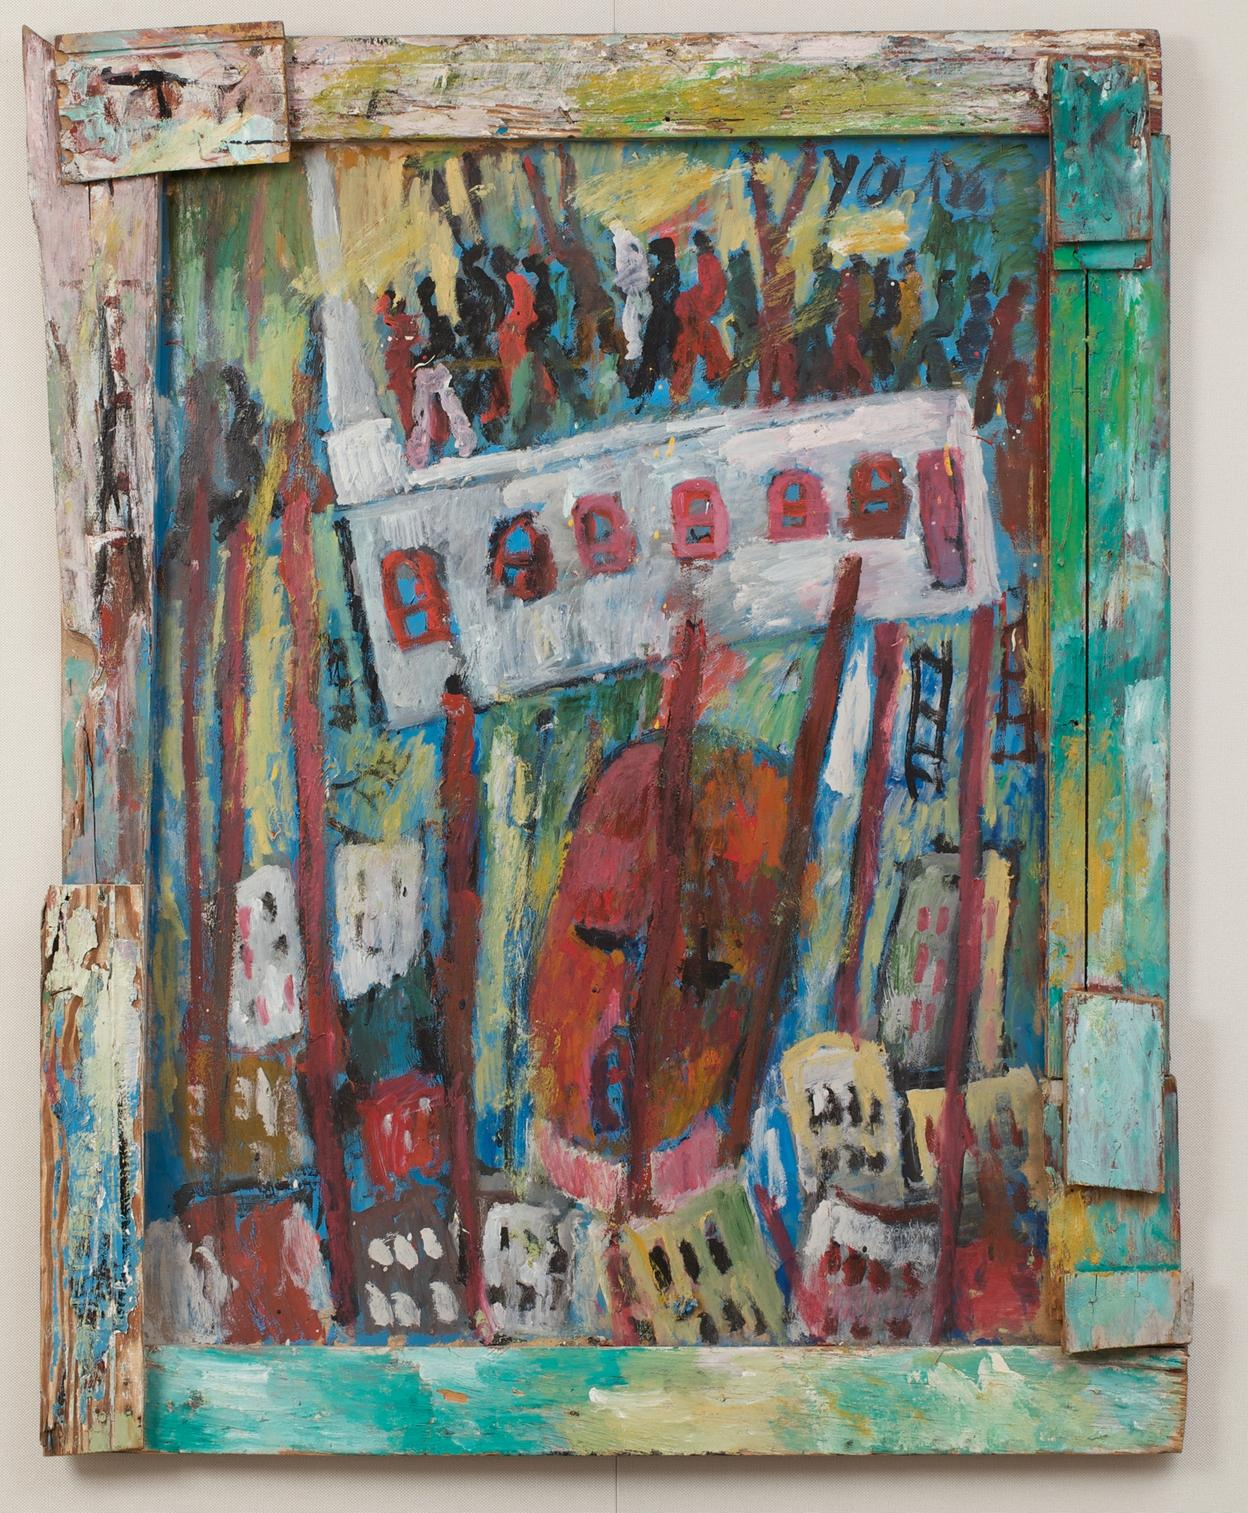 Purvis Young, Jail Was Heat. Paint on weathered Masonite with nailed-on pieces of various types of weathered scrap wood, including yellow pine and plywood, 43 x 34 inches. (Photo by Will Brown courtesy the Philadelphia Museum of Art, The Jill and Sheldon Bonovitz Collection)